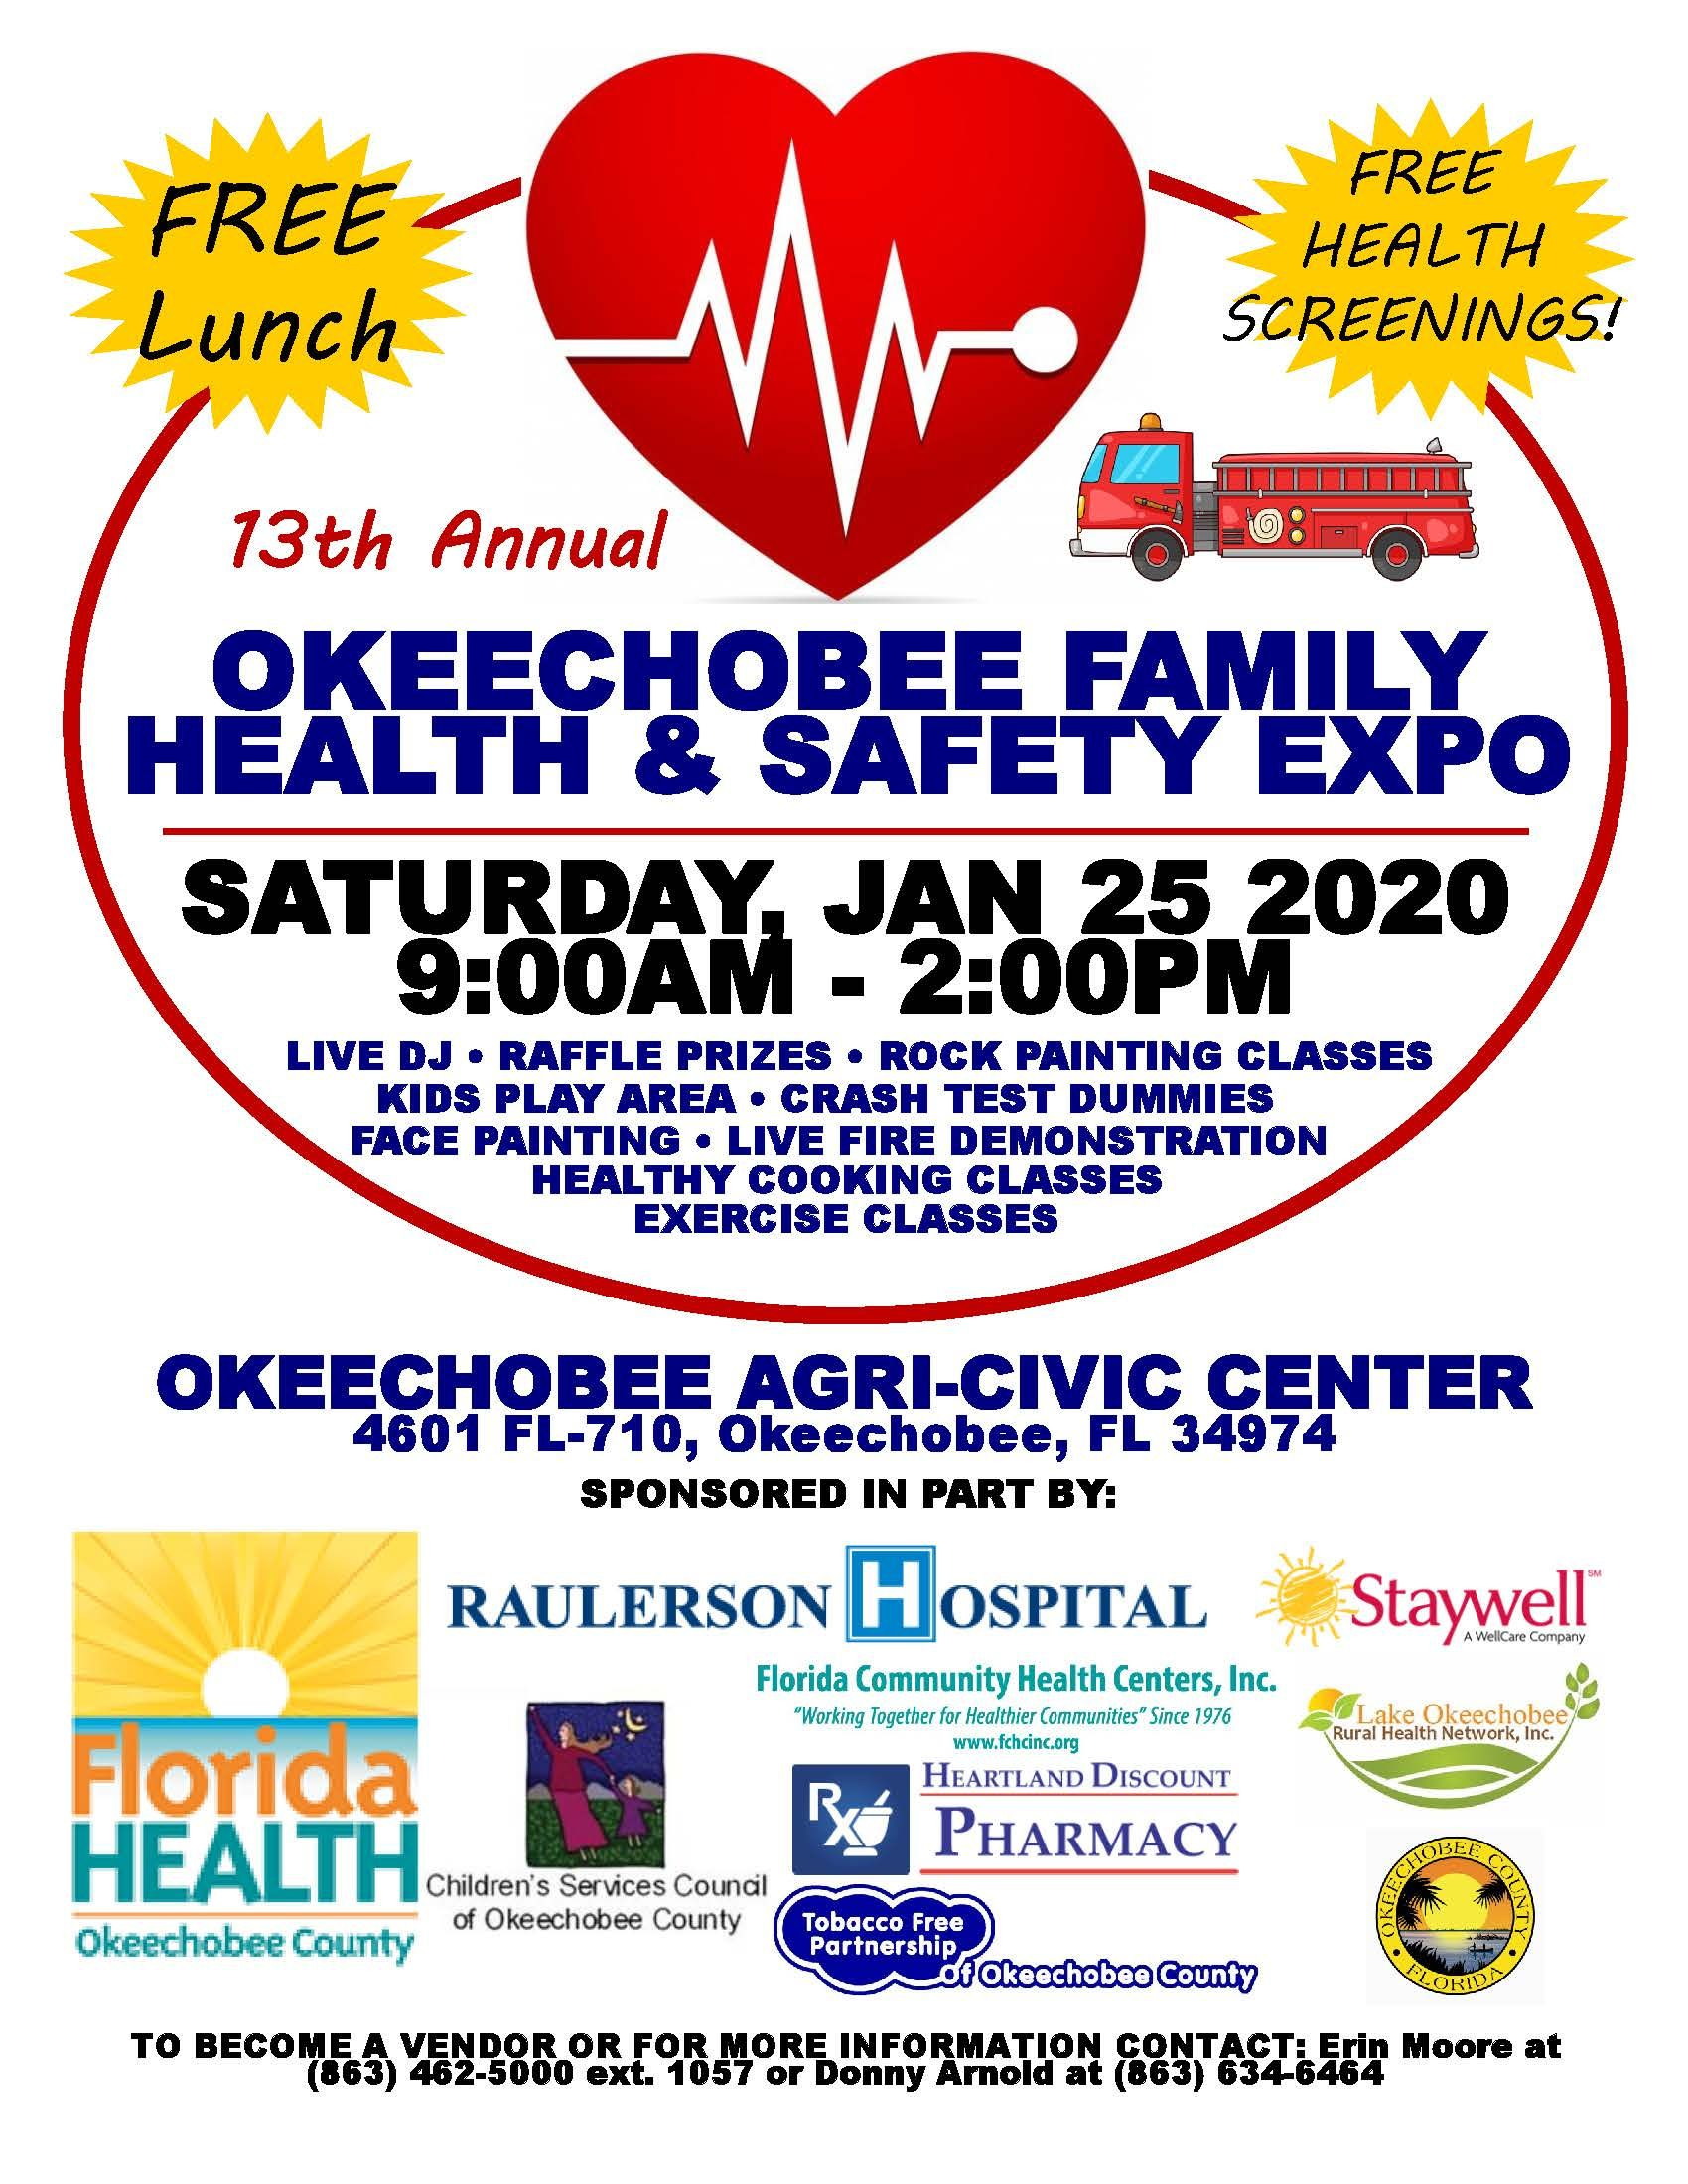 Okeechobee Family Health & Safety Expo